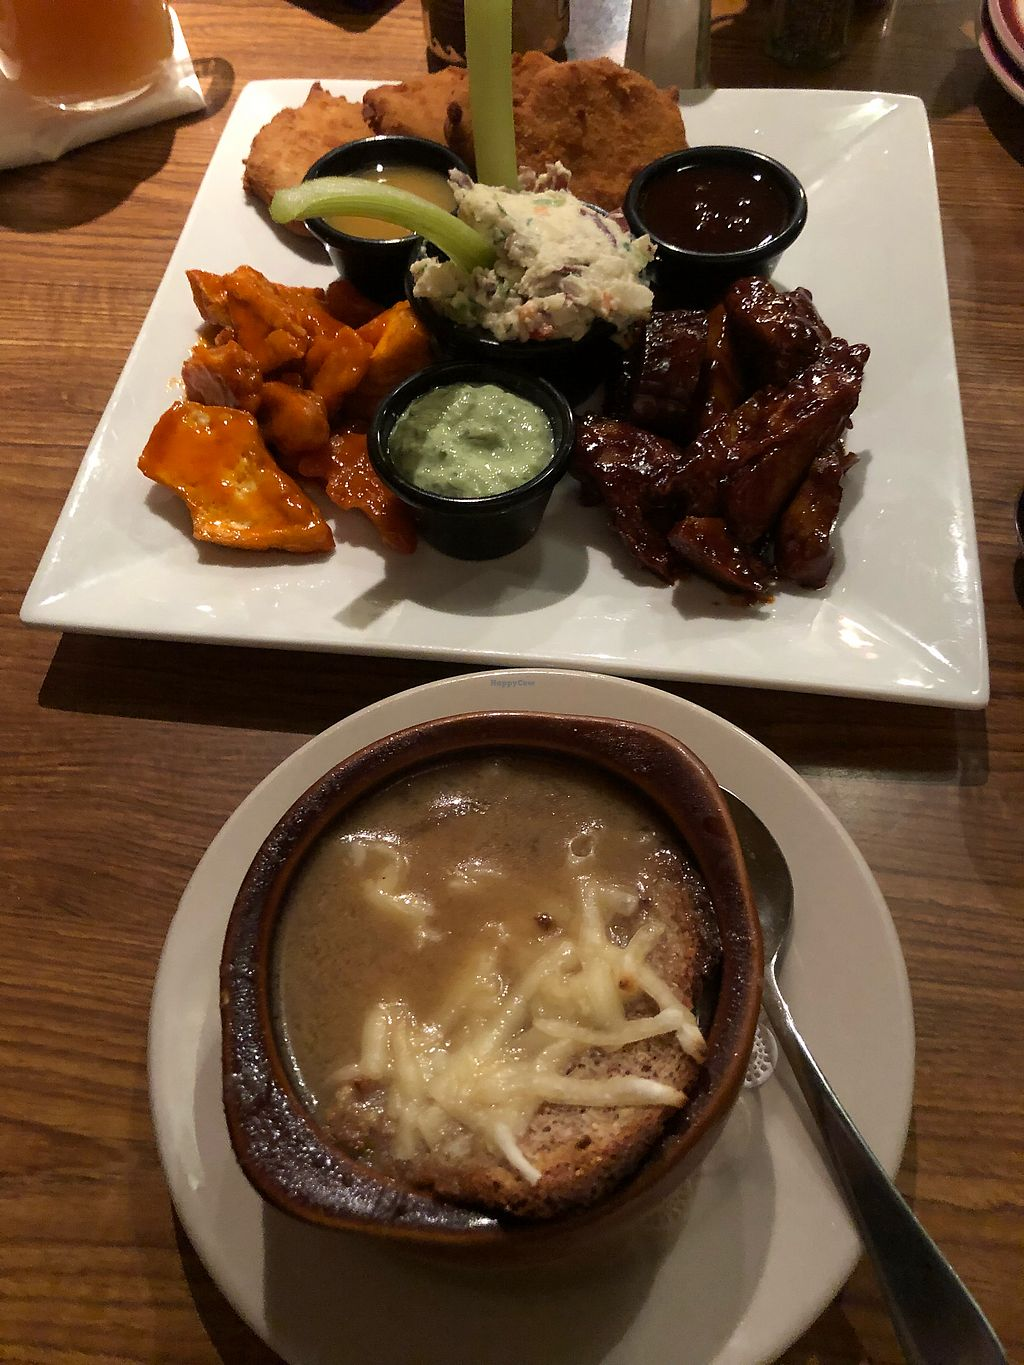 """Photo of Kaya's Kitchen  by <a href=""""/members/profile/TracyV600"""">TracyV600</a> <br/>French onion soup and Kaya's combo <br/> January 11, 2018  - <a href='/contact/abuse/image/2213/345233'>Report</a>"""